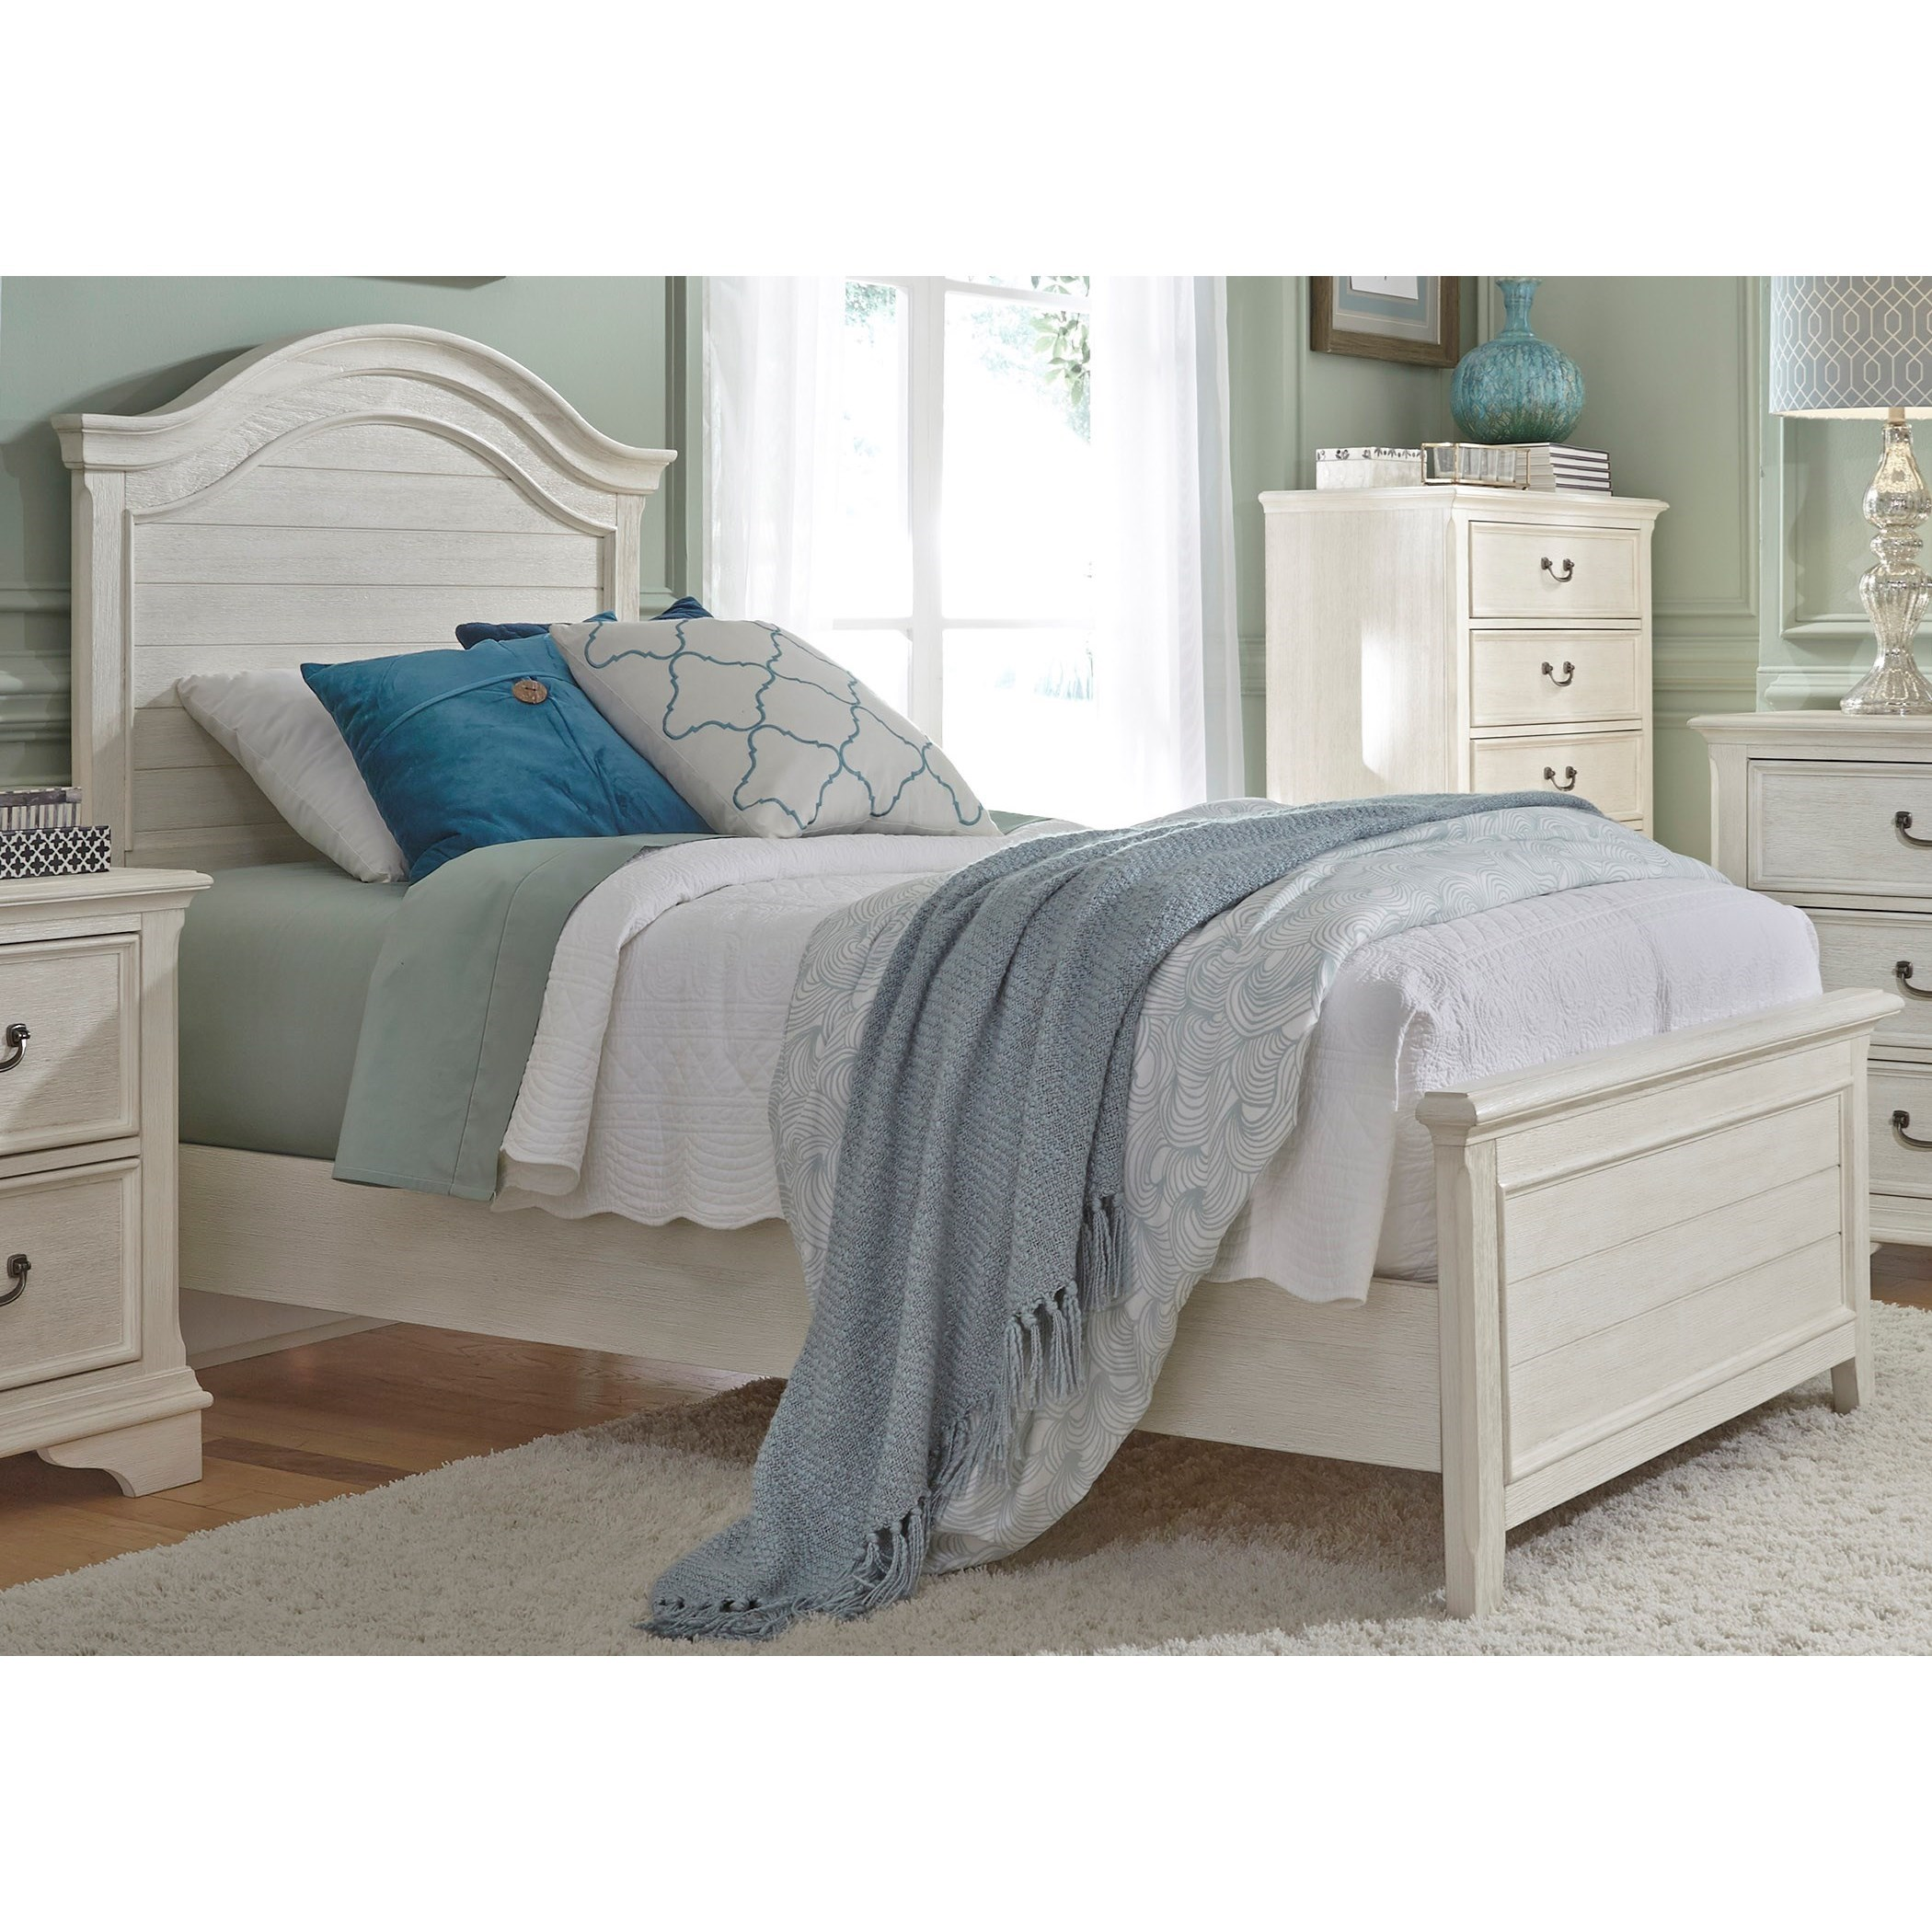 Bayside Bedroom Full Panel Bed  by Libby at Walker's Furniture